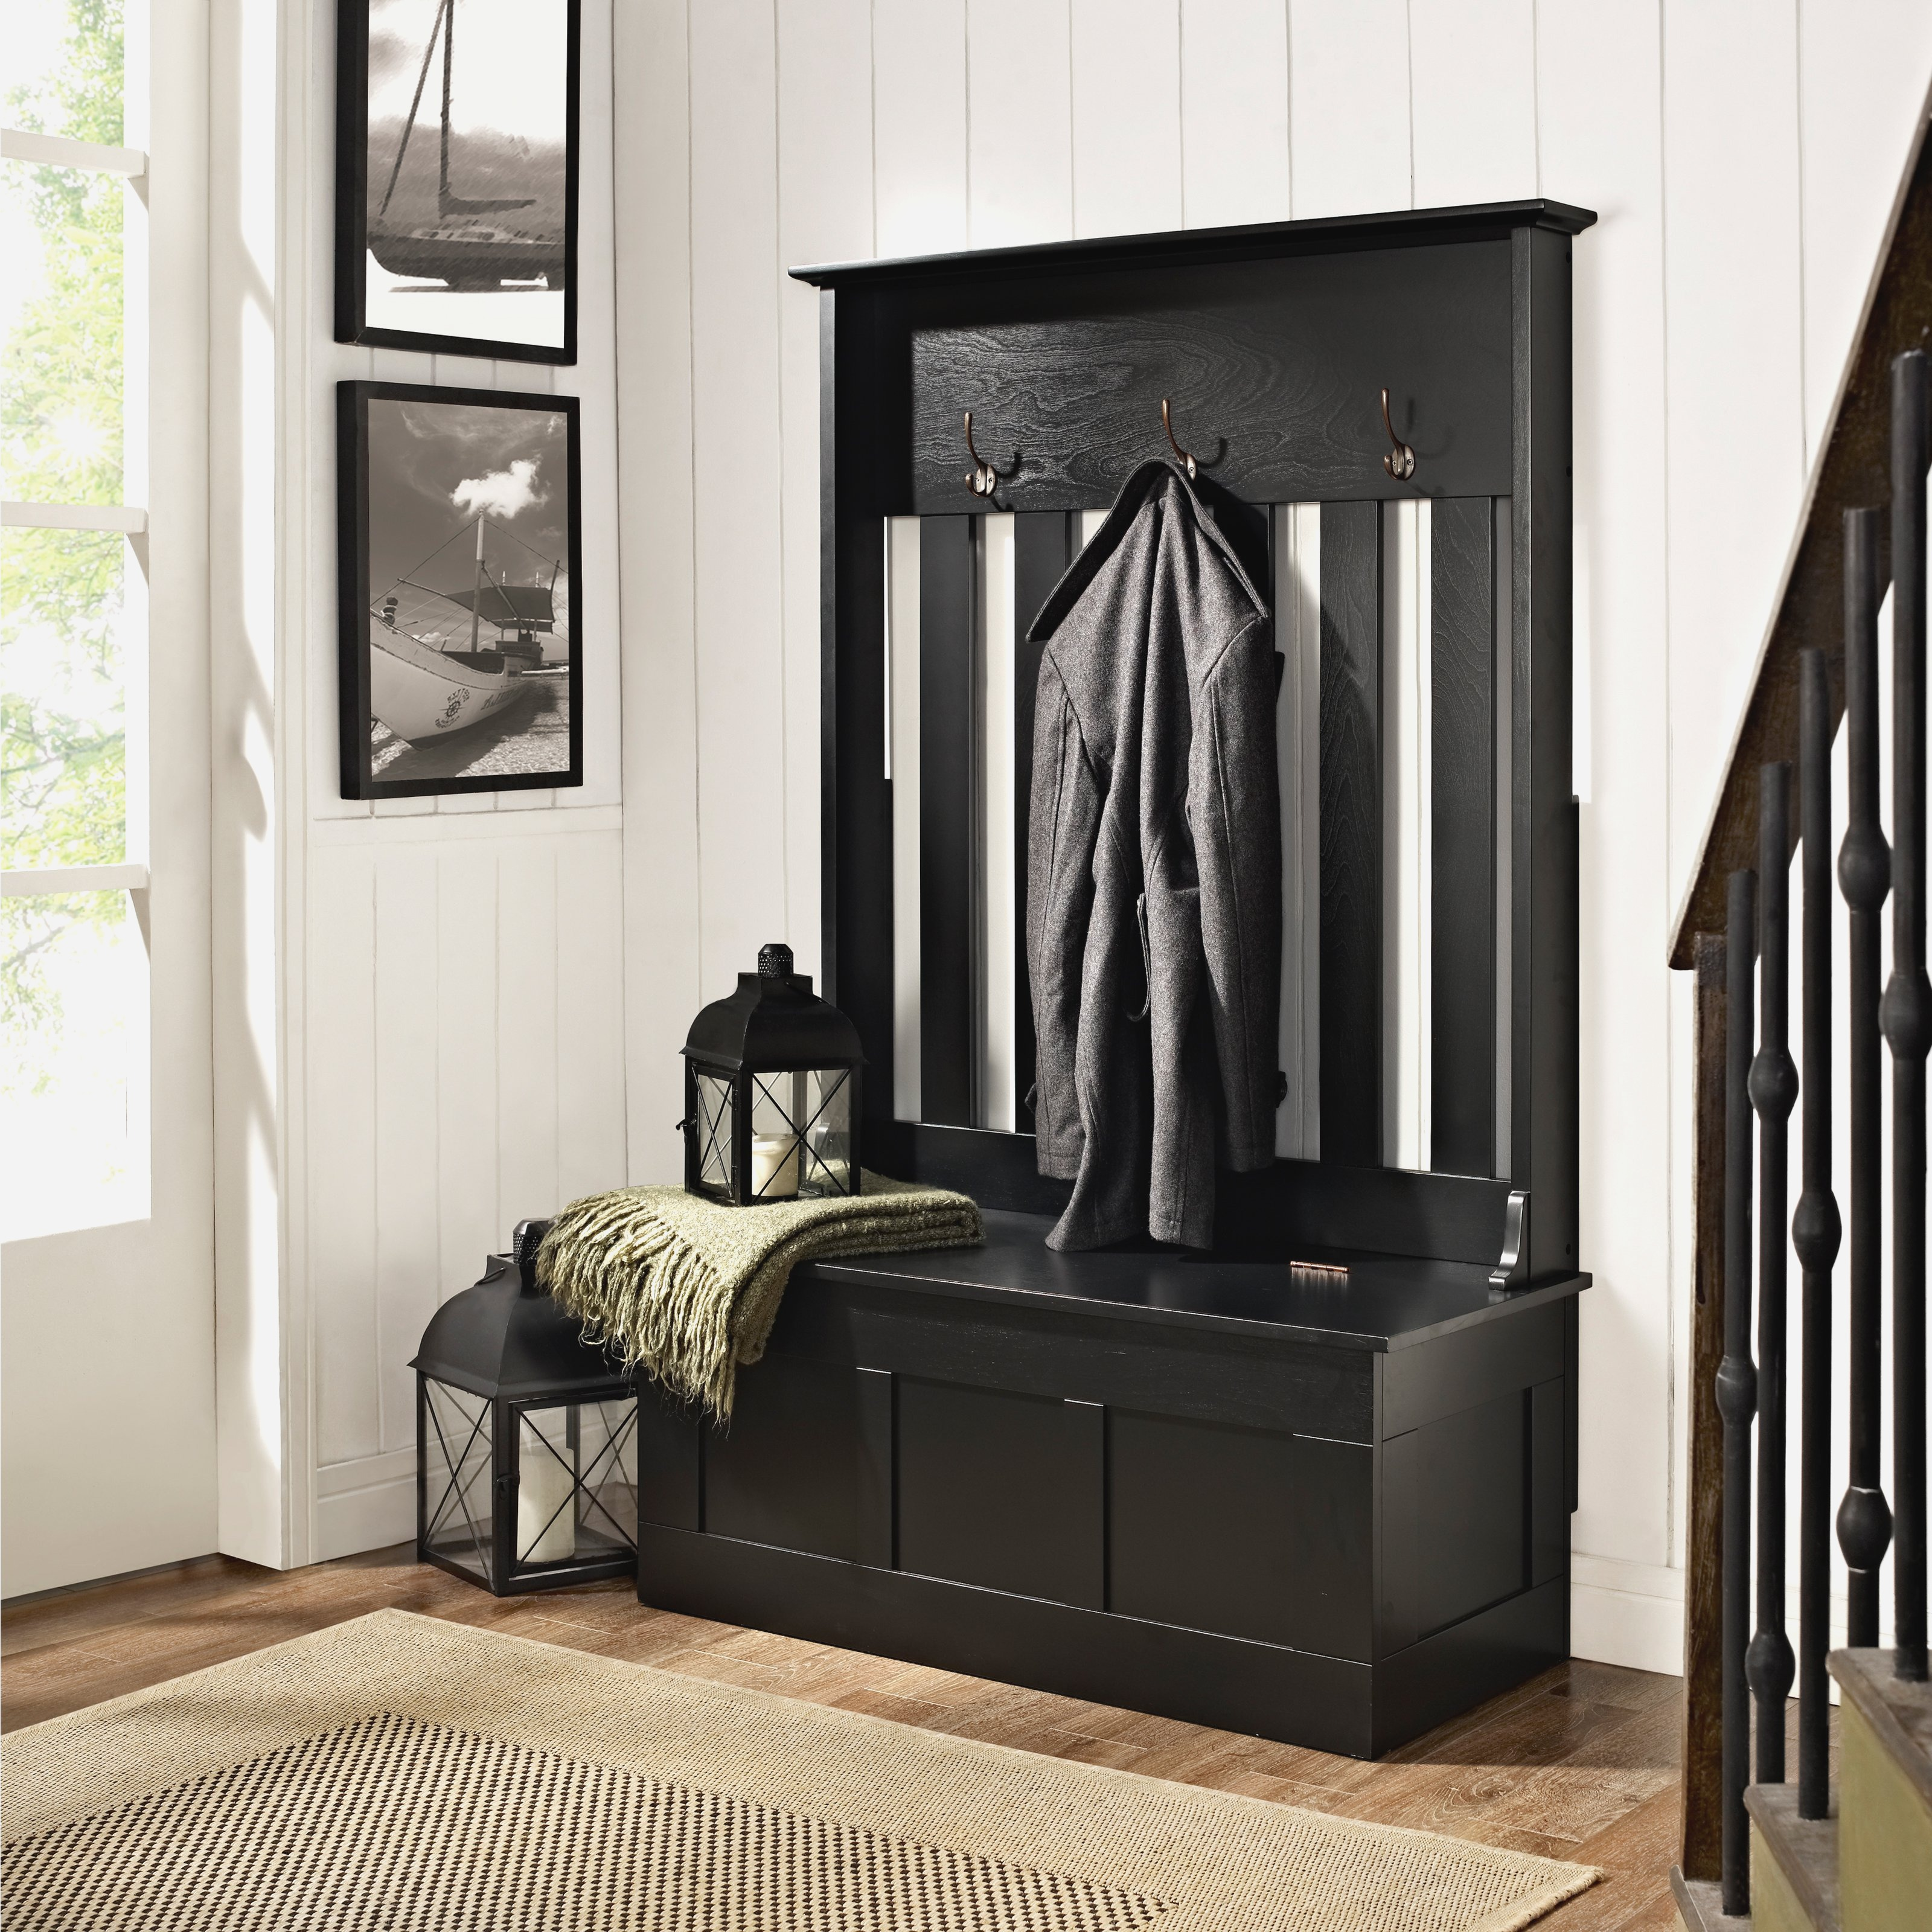 Entryway Storage Bench with Coat Rack | Entryway Storage Bench and Coat Rack | Coat Rack and Shoe Bench